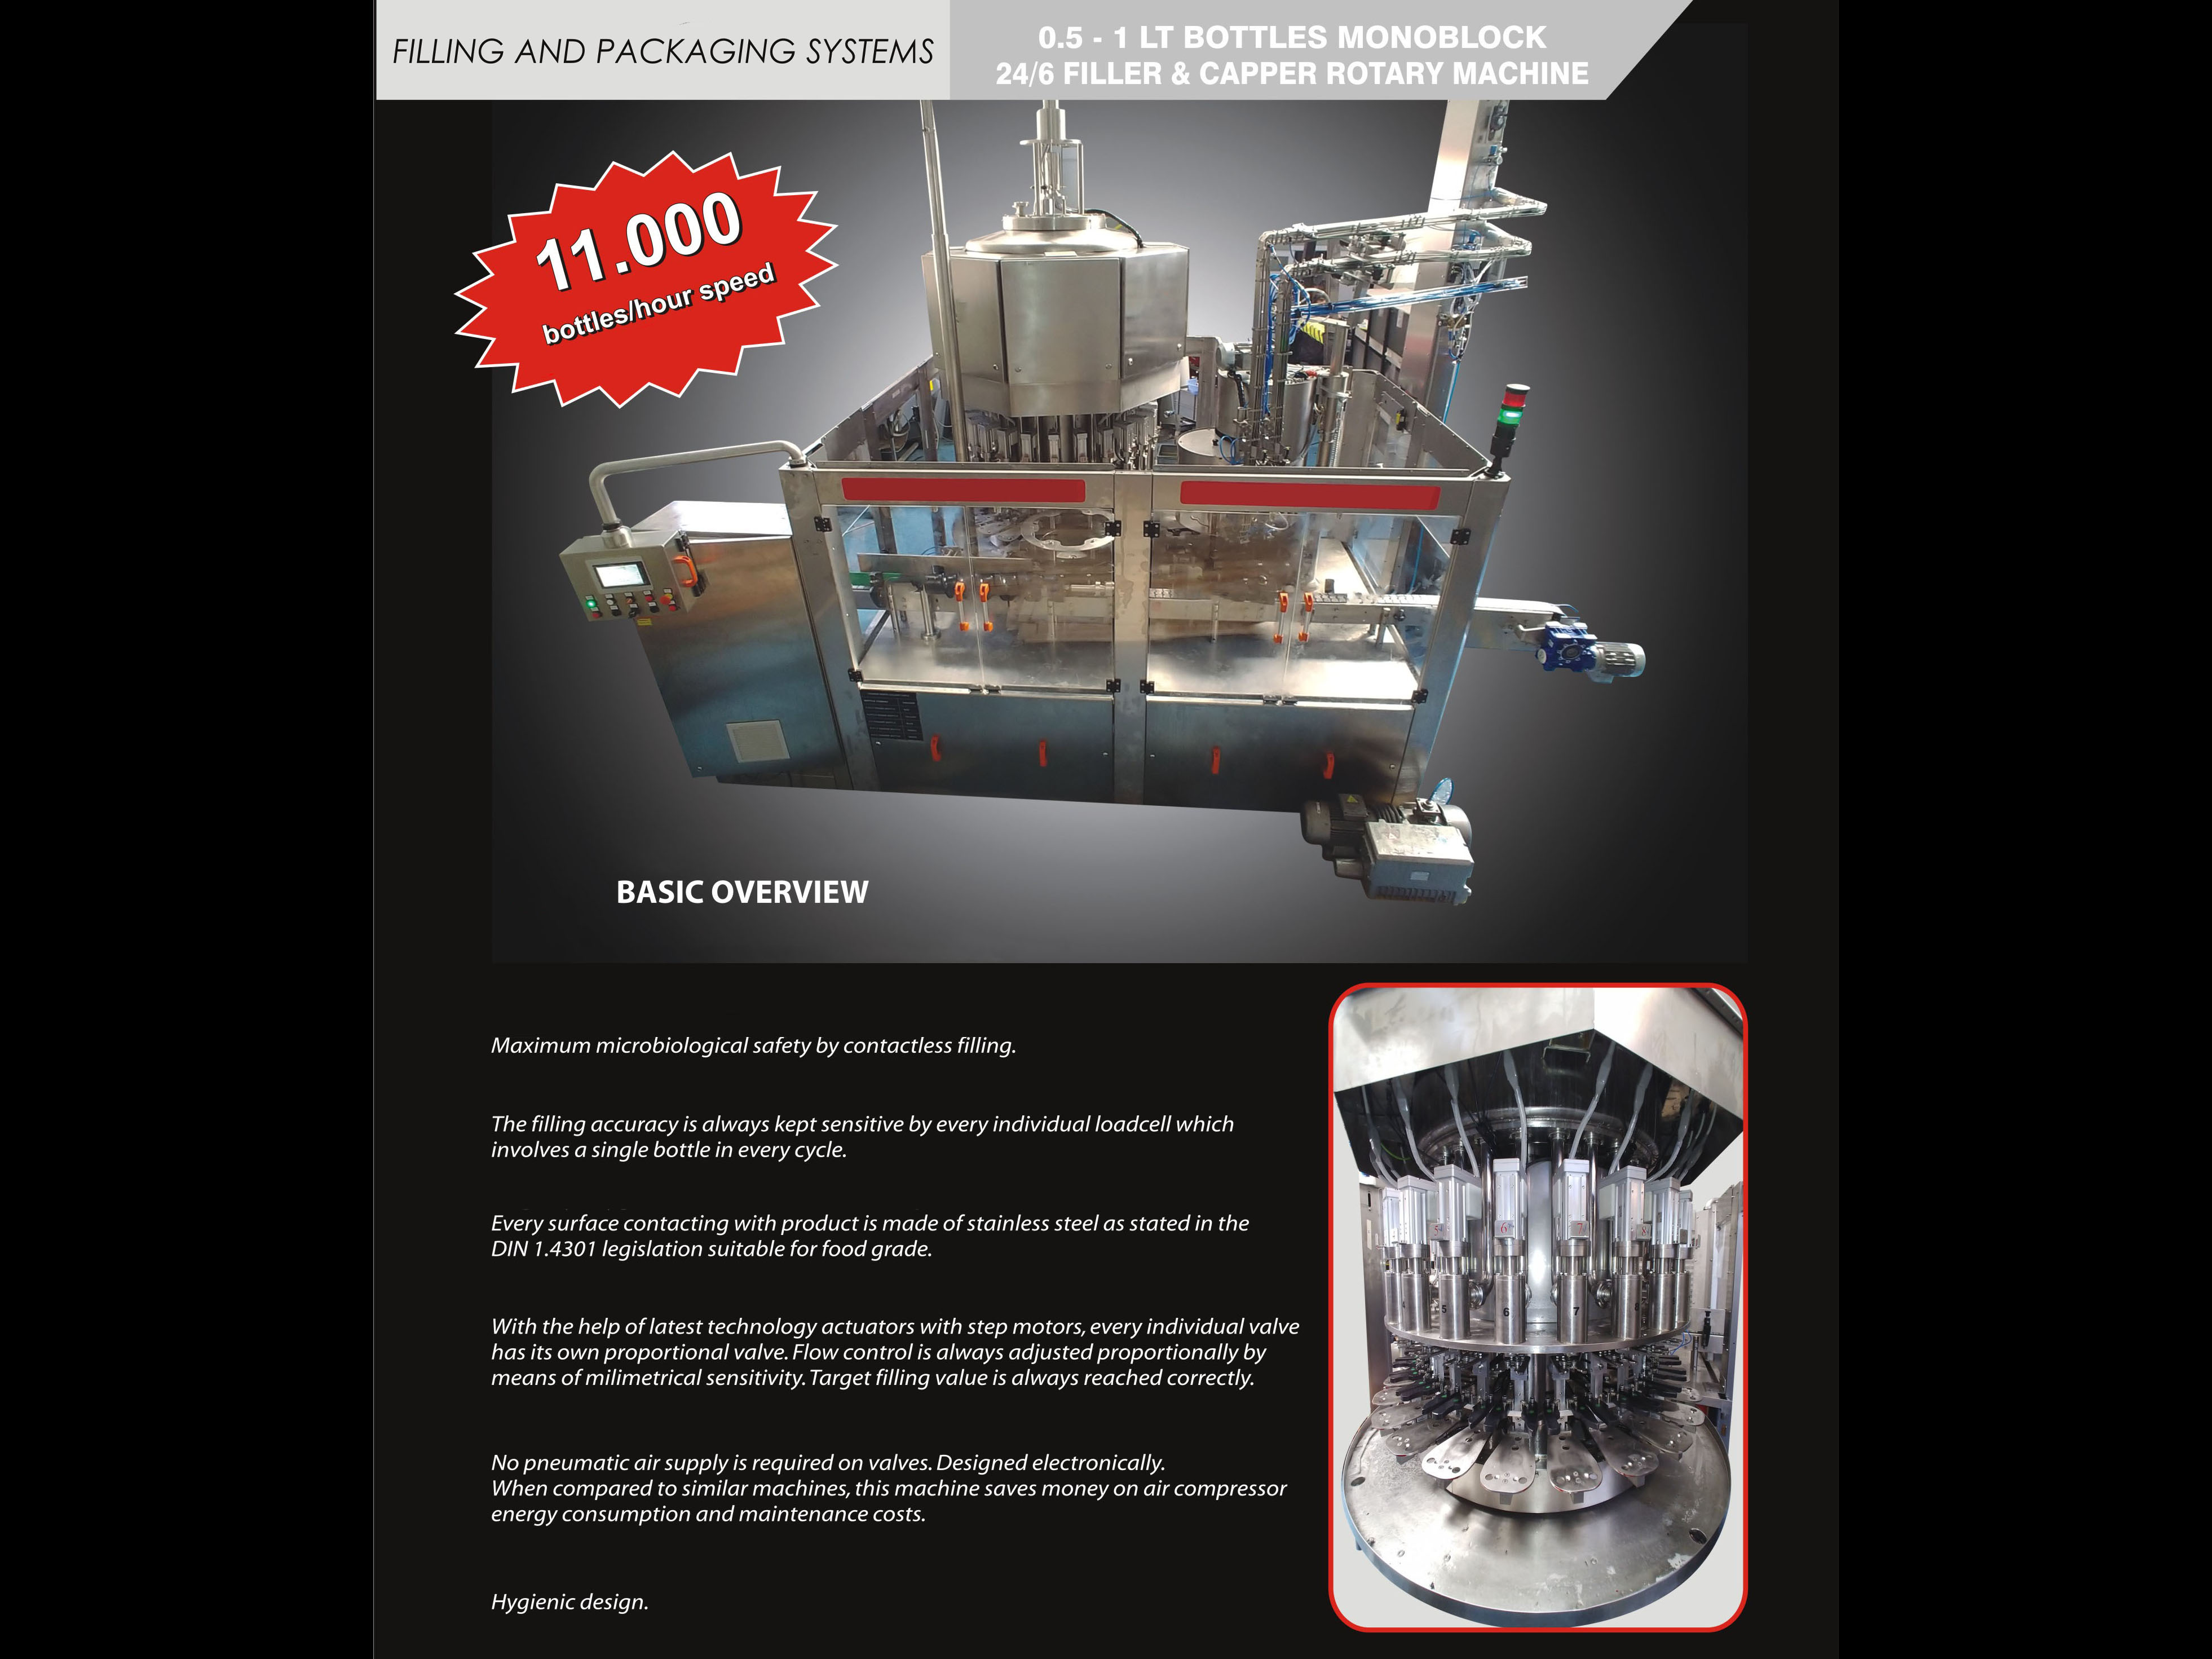 New Filling / Capping Monoblock 24.6 - 5